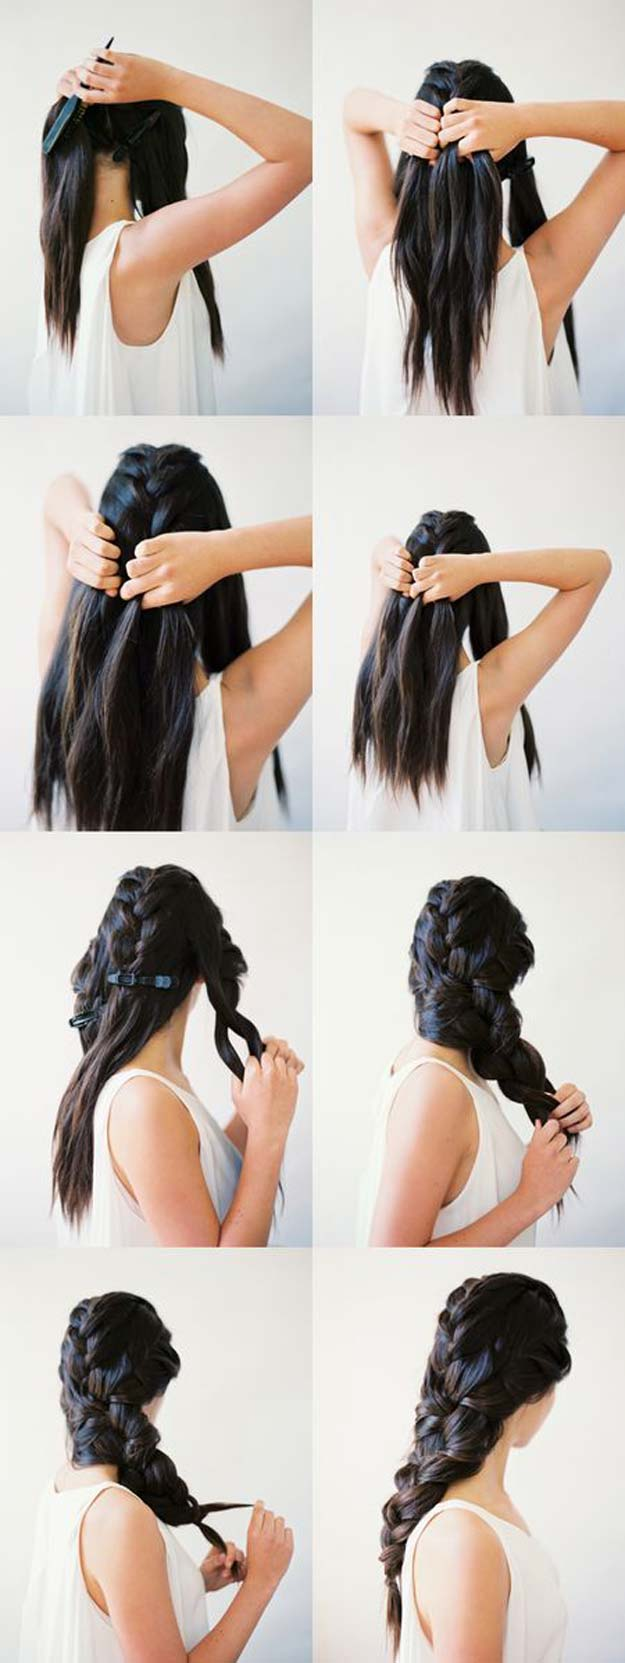 Elegant Cool And Easy DIY Hairstyles   Stylish Braids   Quick And Easy Ideas For  Back To